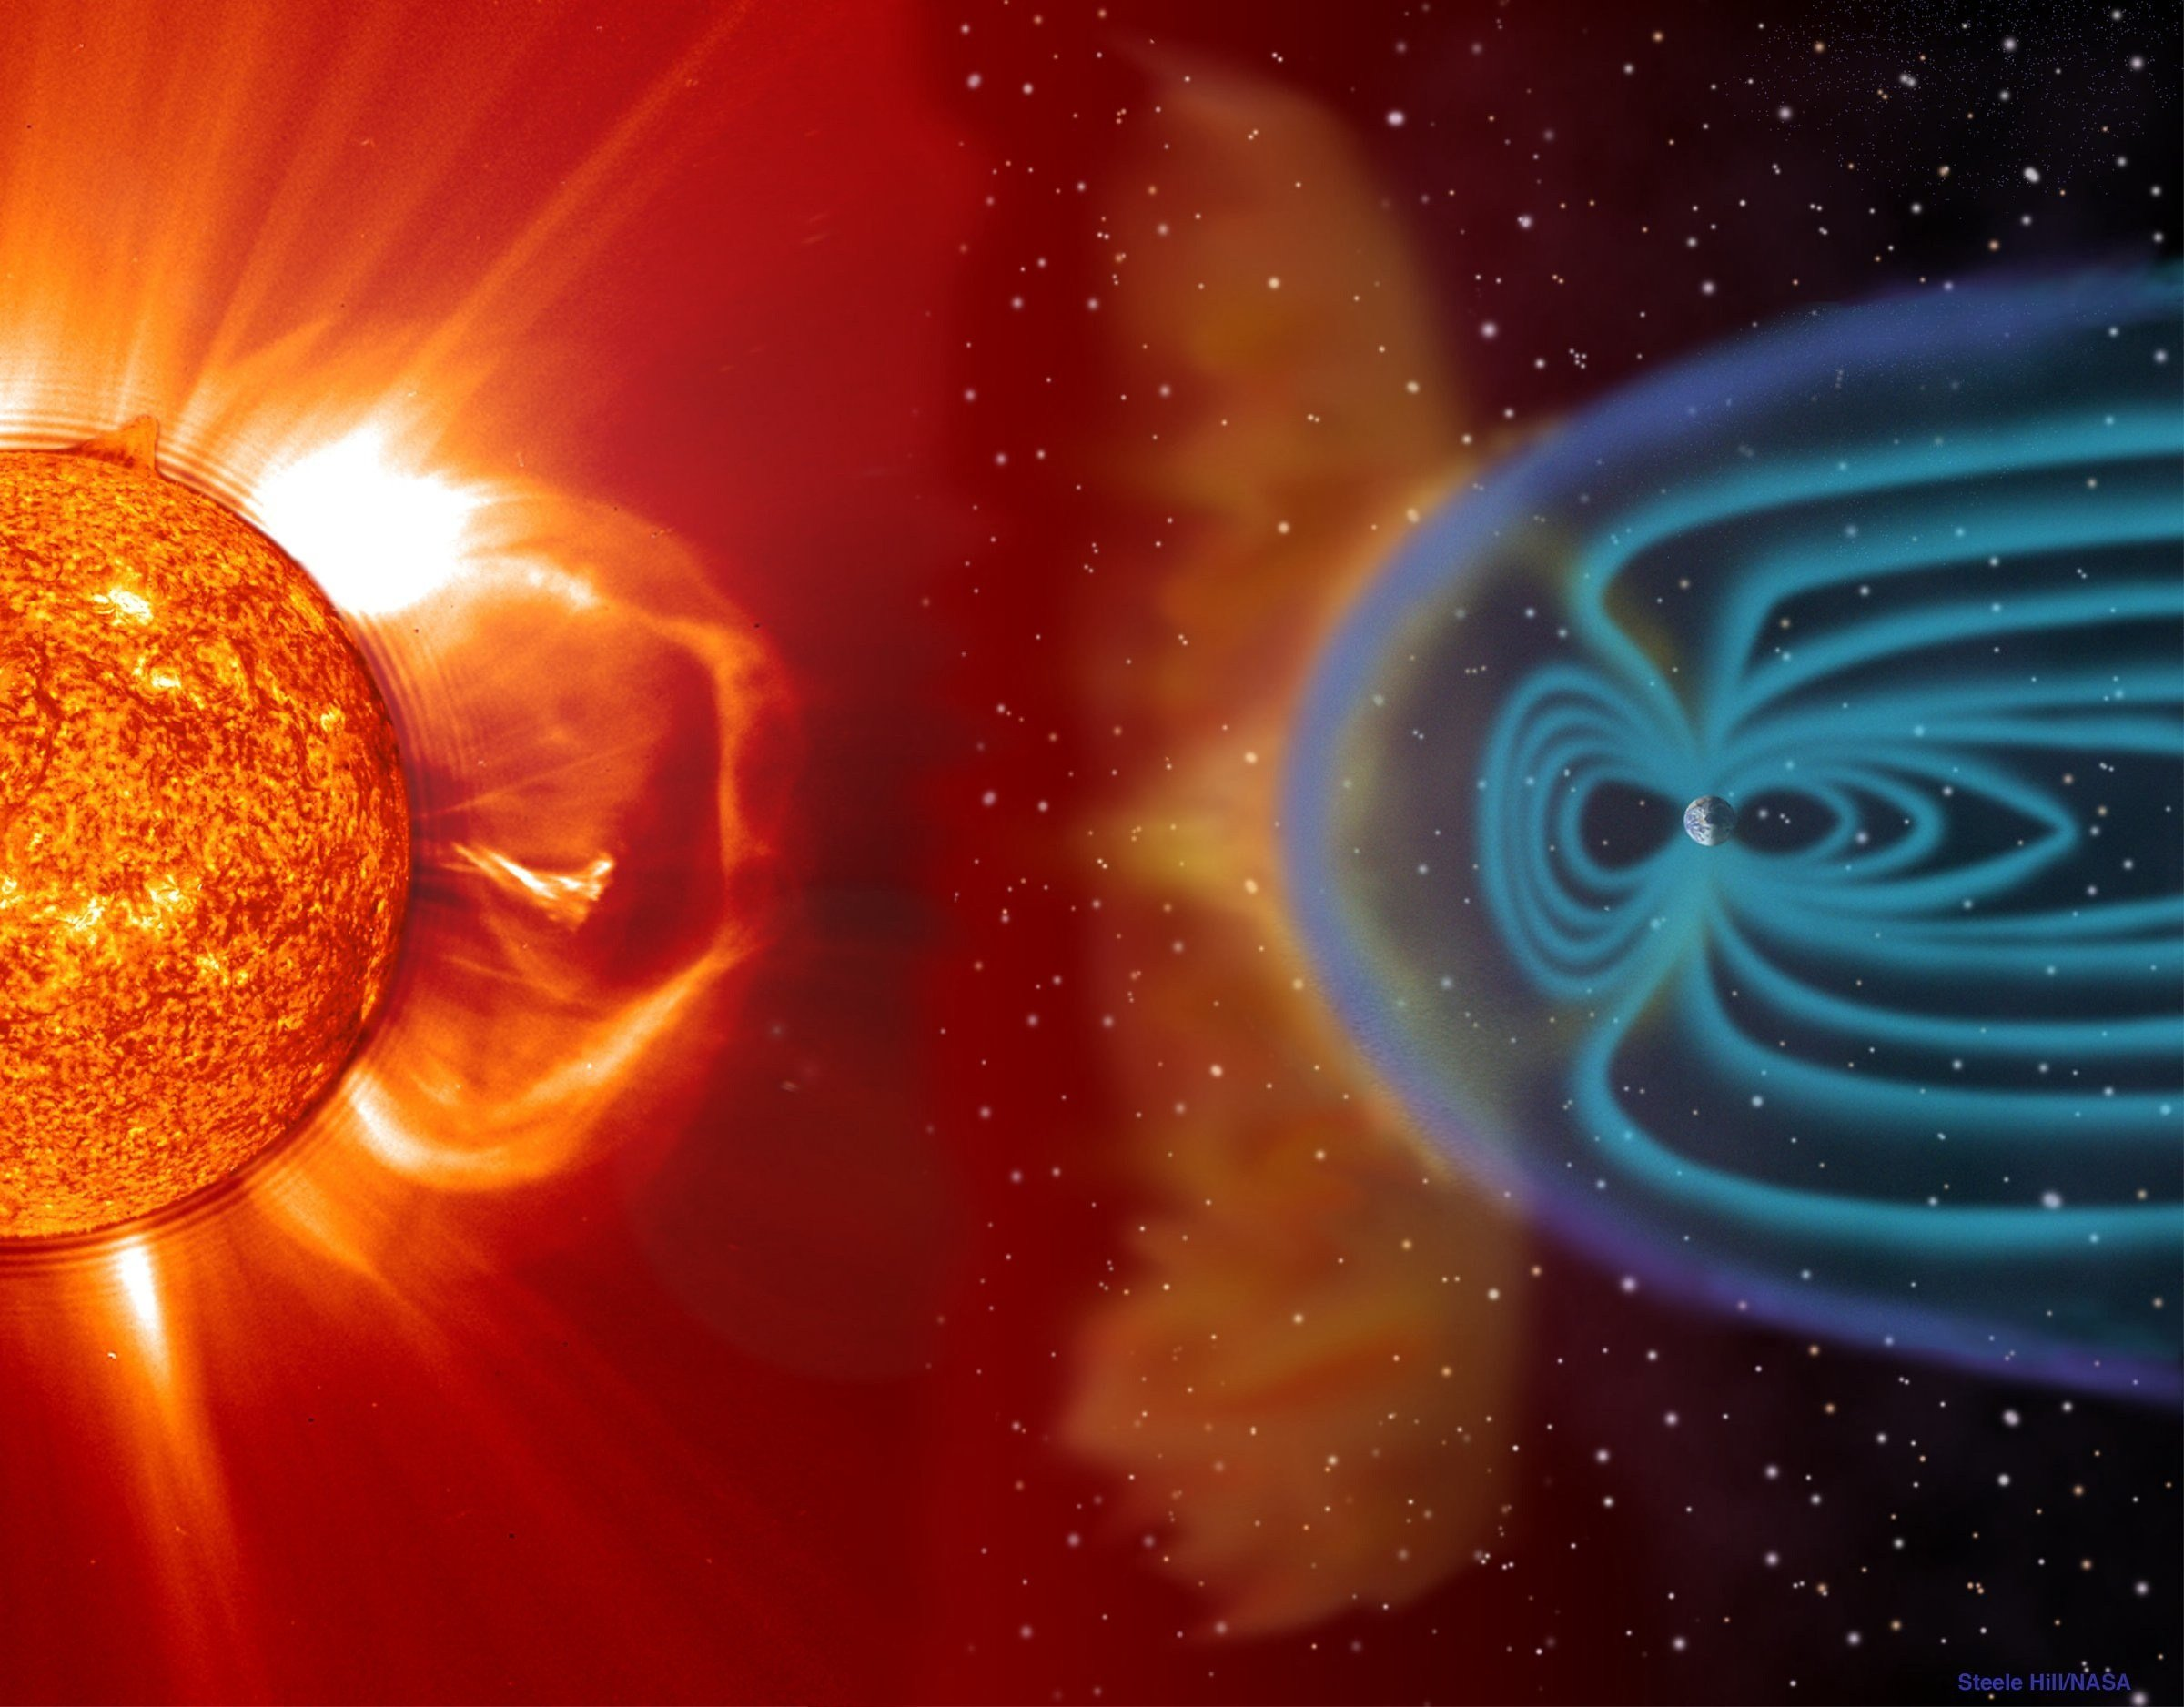 Depiction of a solar flare's effect on Earth's magnetic field. (Source: NASA)